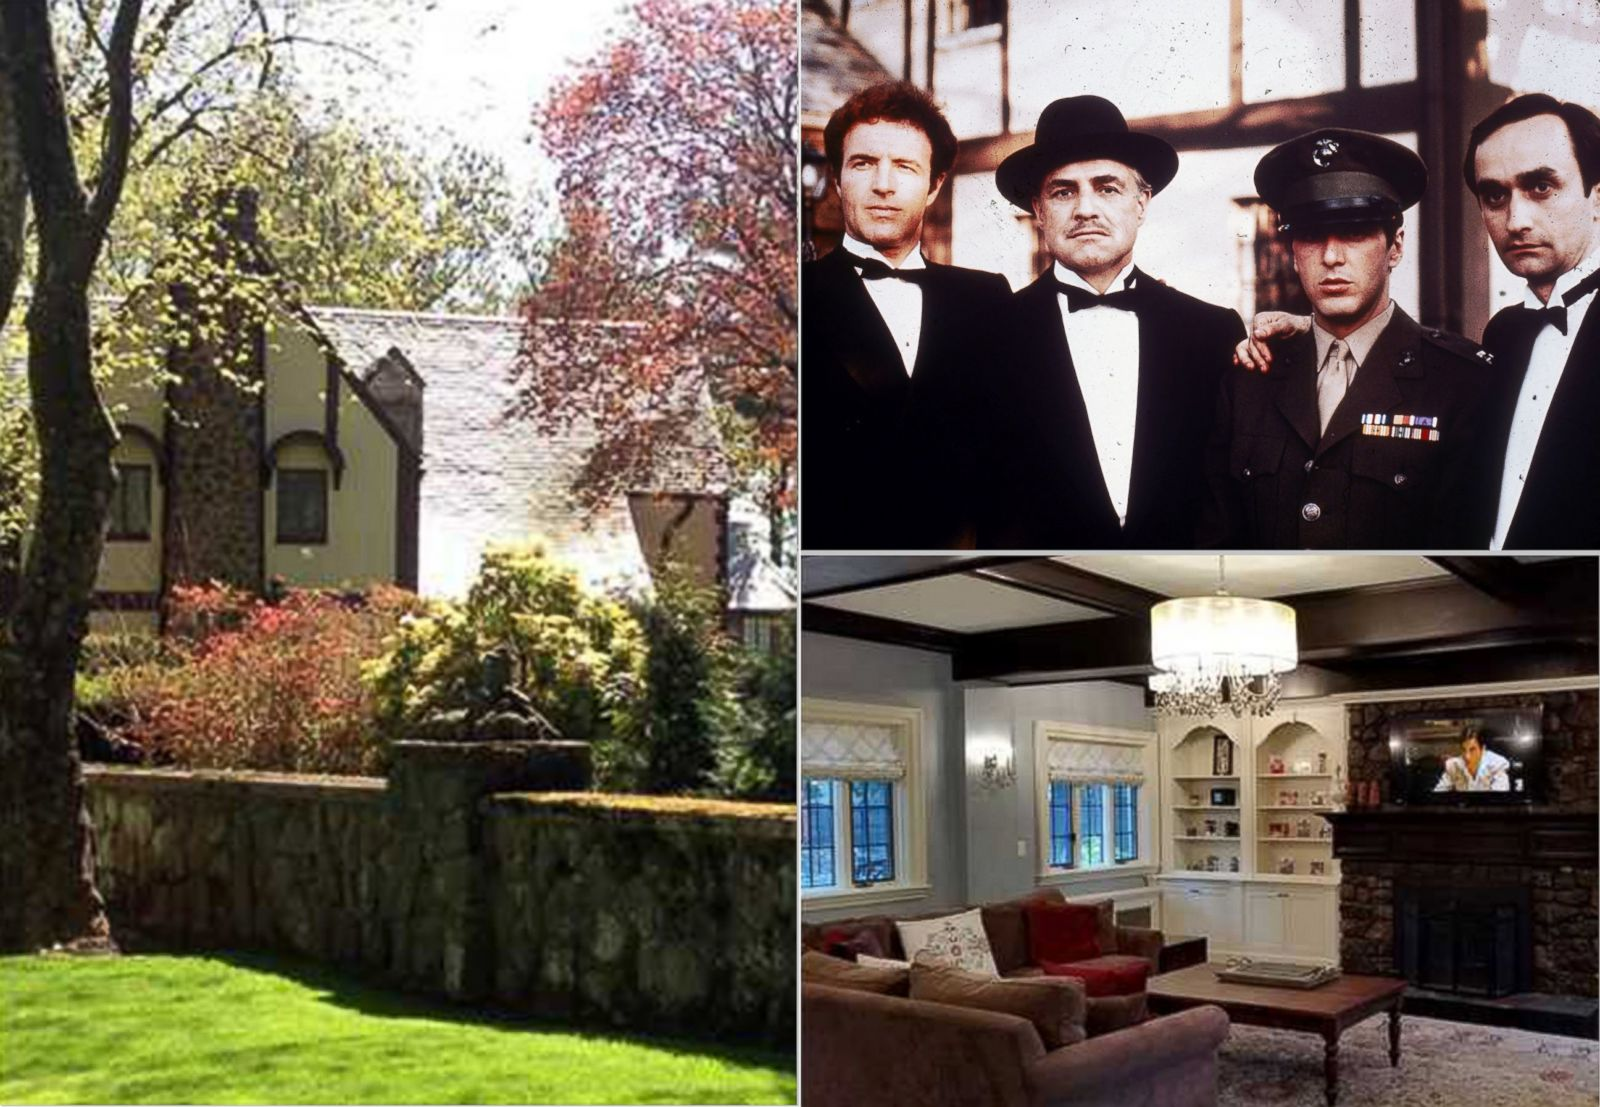 Dog House For Sale >> 'The Godfather' House on Staten Island Is For Sale Picture | Television and Film Homes for Sale ...